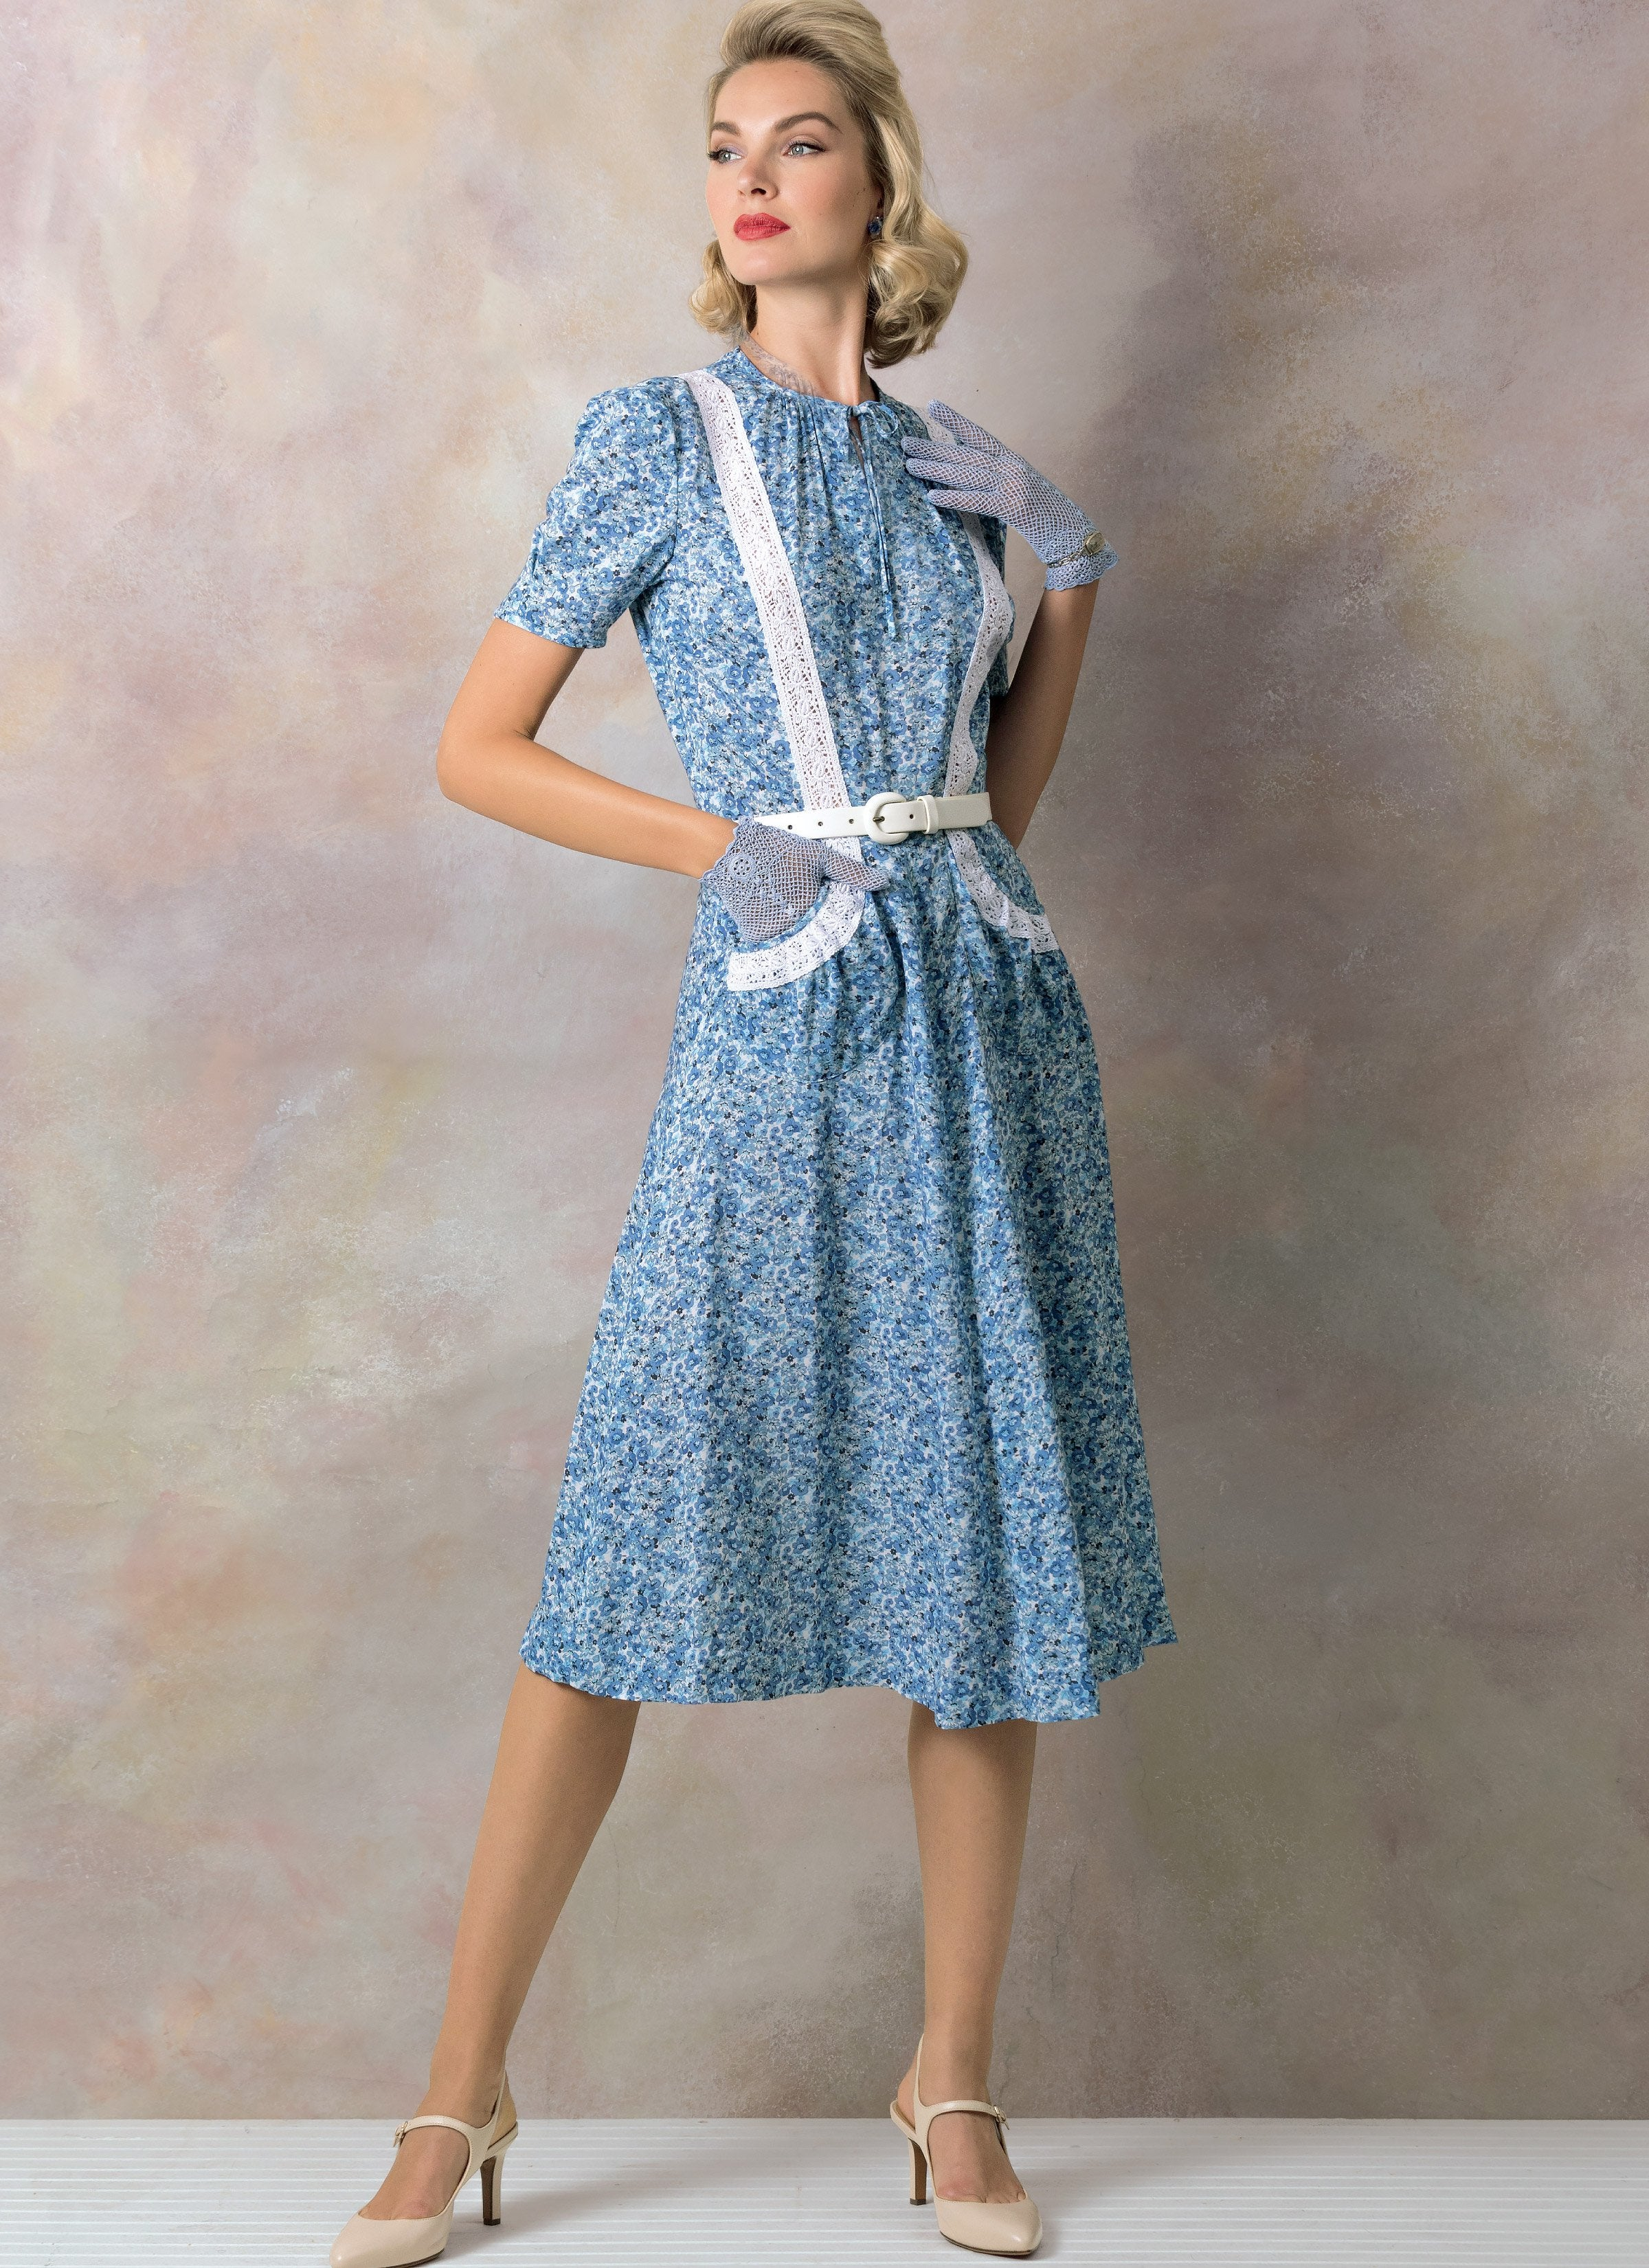 V9294 Misses\' Dress Pattern — jaycotts.co.uk - Sewing Supplies